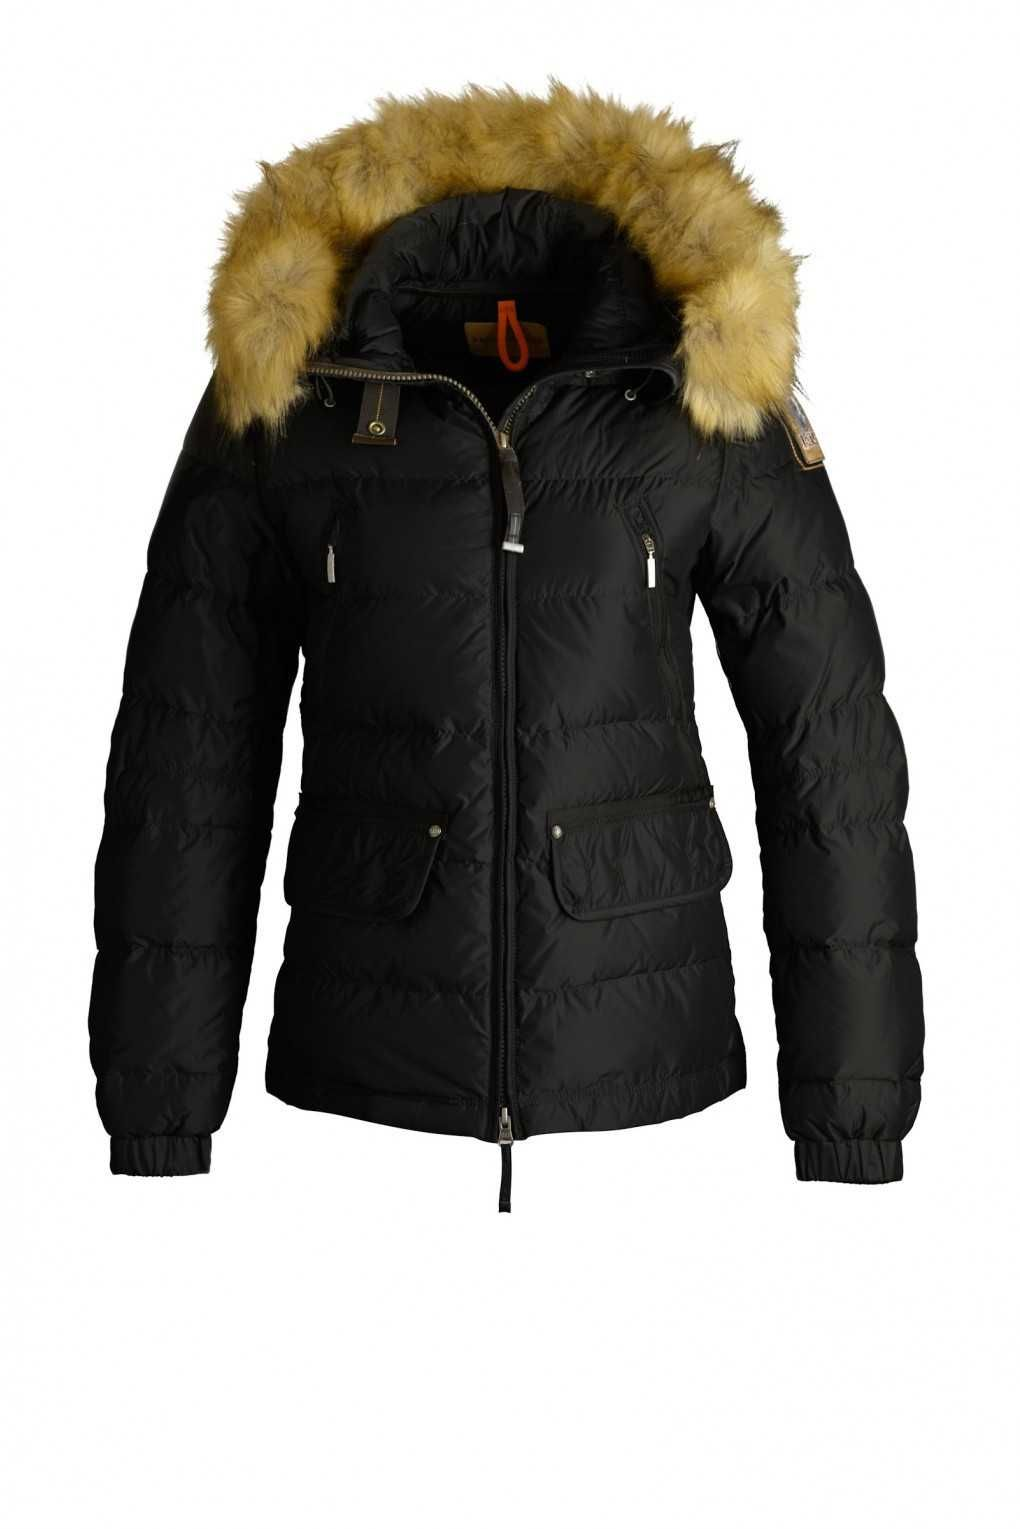 Women's Parajumper Sale,Best Quality Parajumpers Long Bear Down Jacket, Parajumpers Women's Vest And Parajumpers Men's Parka For Men,Women And Kid From ...